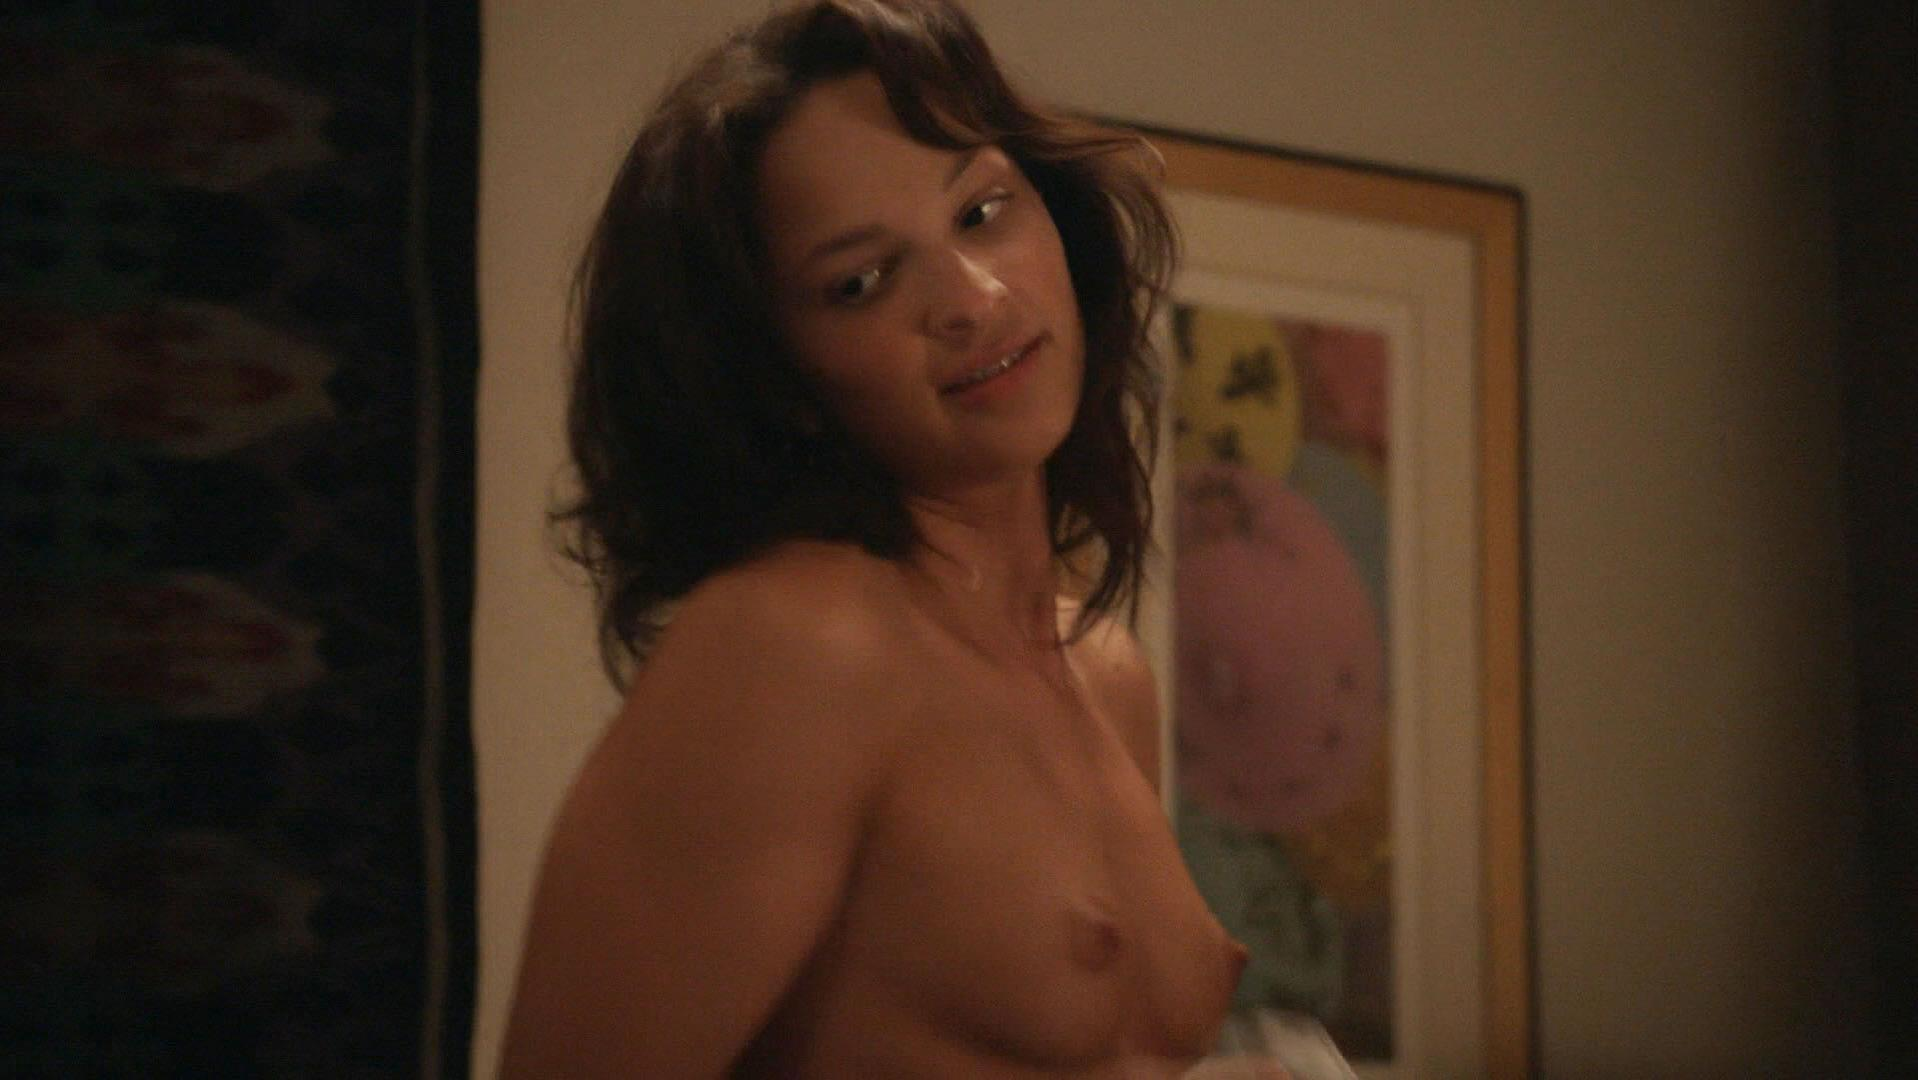 Ruby Modine nude - Shameless s07e05 (2016)